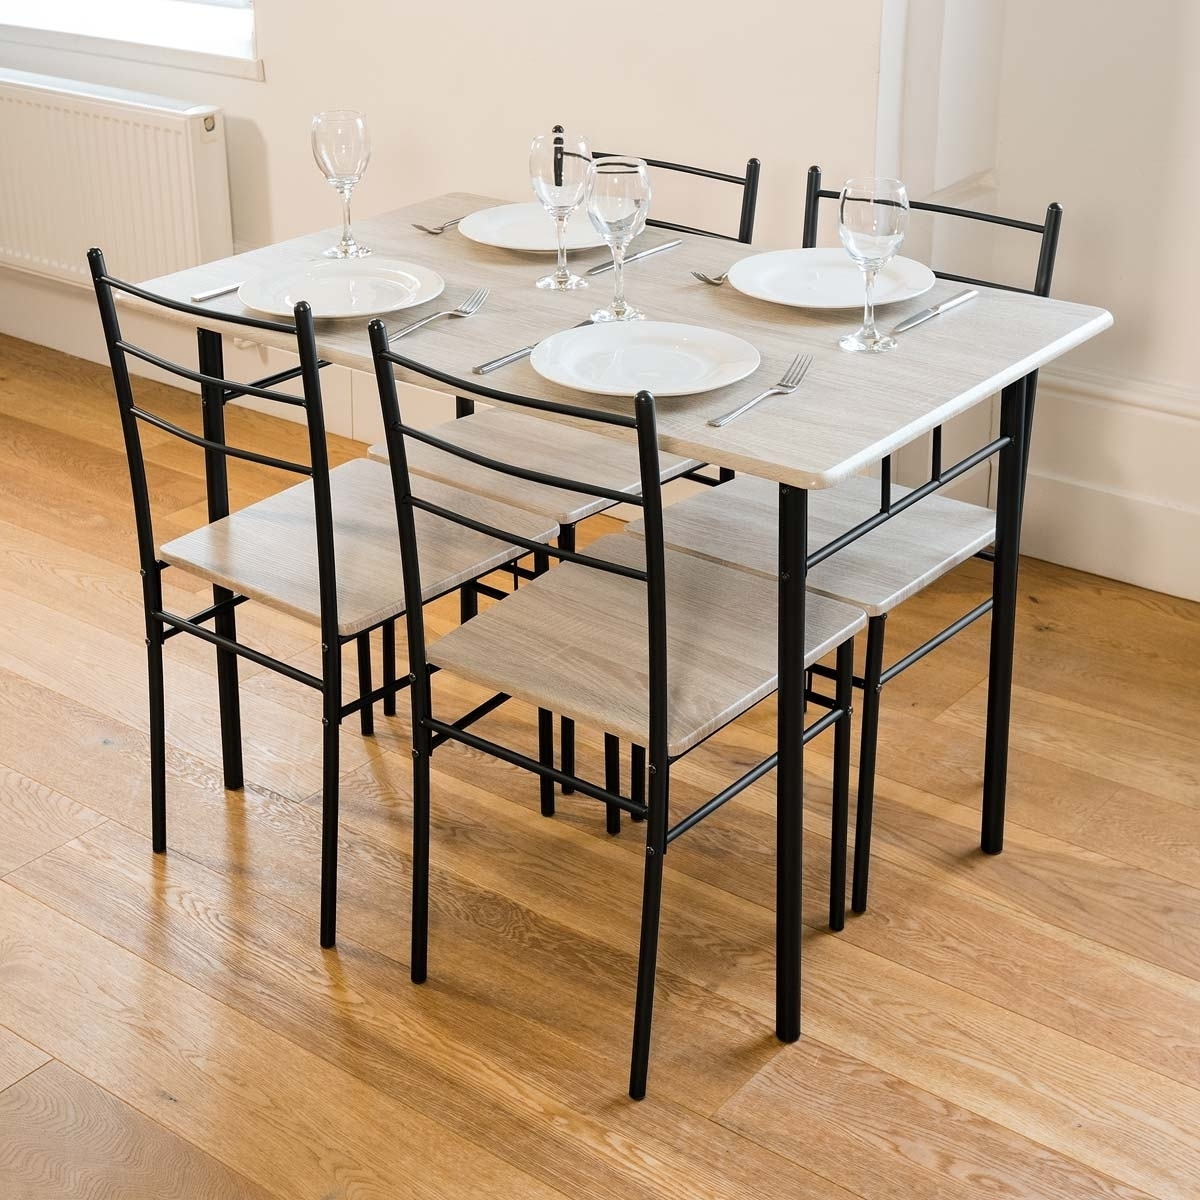 5 Piece Modern Dining Table And 4 Chairs Set Textured Wood Effect Regarding Most Up To Date Modern Dining Sets (View 22 of 25)